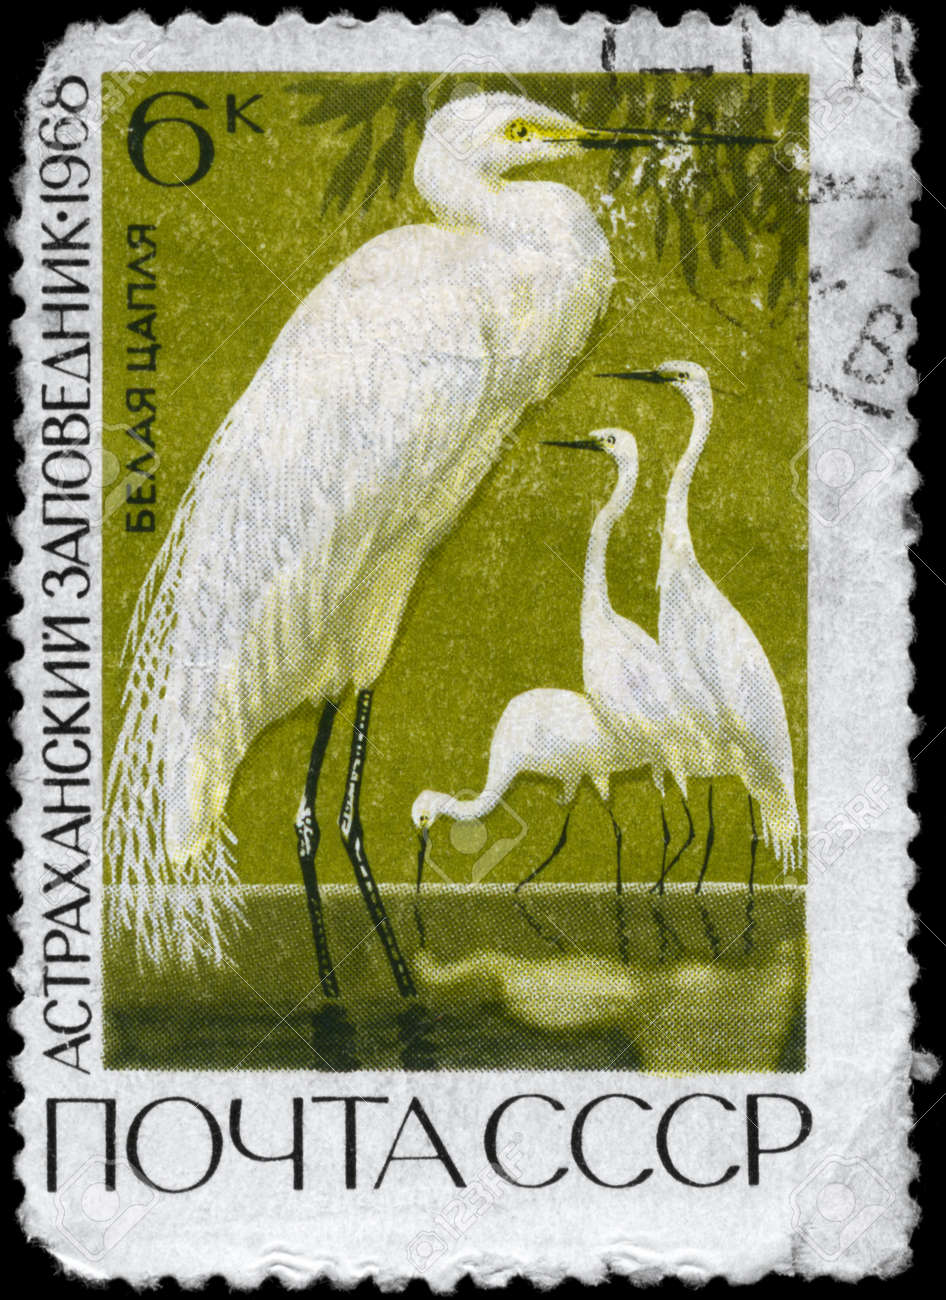 USSR - CIRCA 1968: A Stamp printed in USSR shows image of a Great White Egret from the series